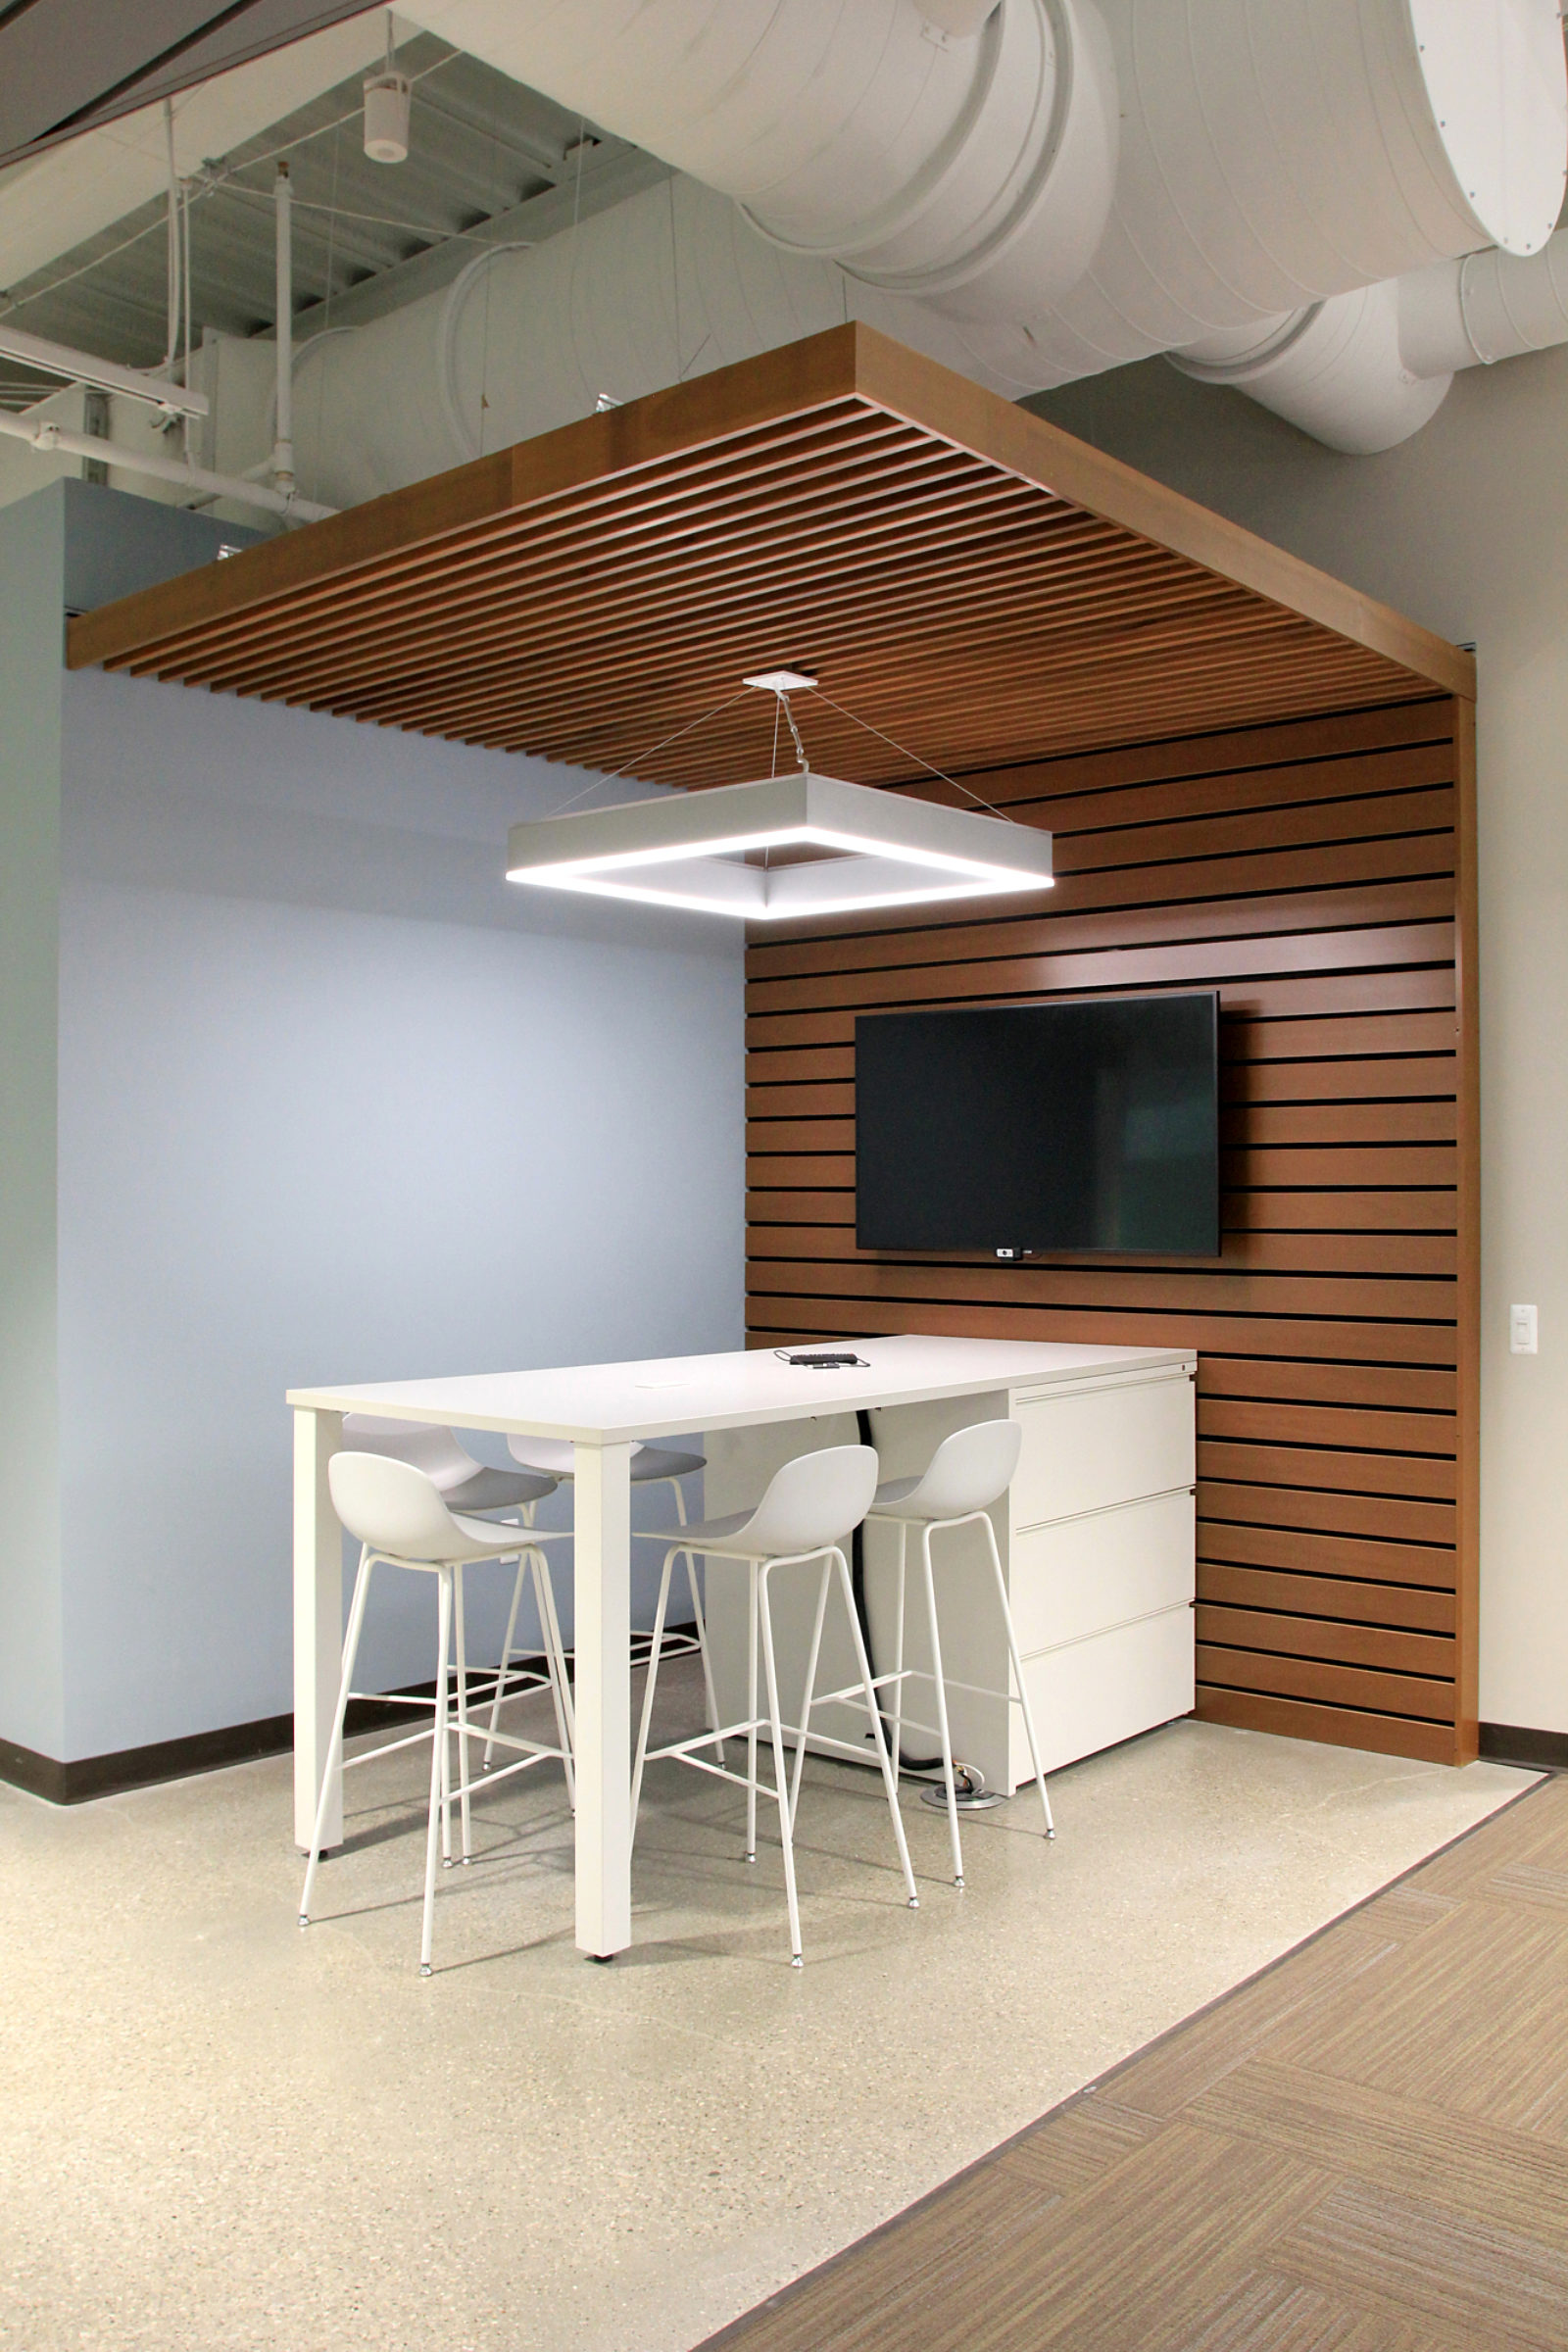 A long white countertop attached to a lateral file surrounded by white stools with a monitor mounted on a wood-paneled wall behind it.